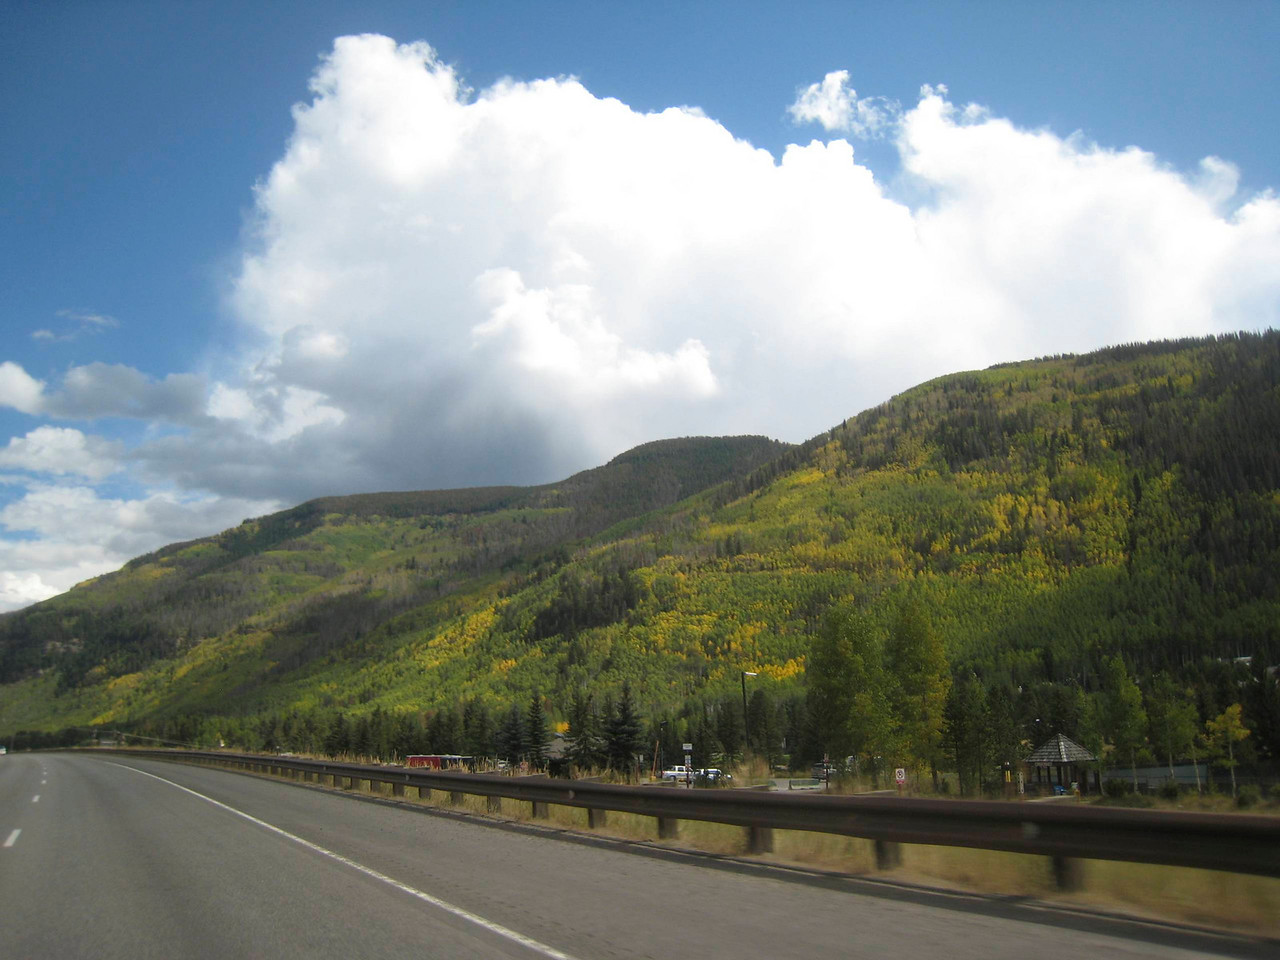 Returning home from Vail along I-70, we can see the leaves starting to turn.  Another week or two and it will be prime color in the Rockies.